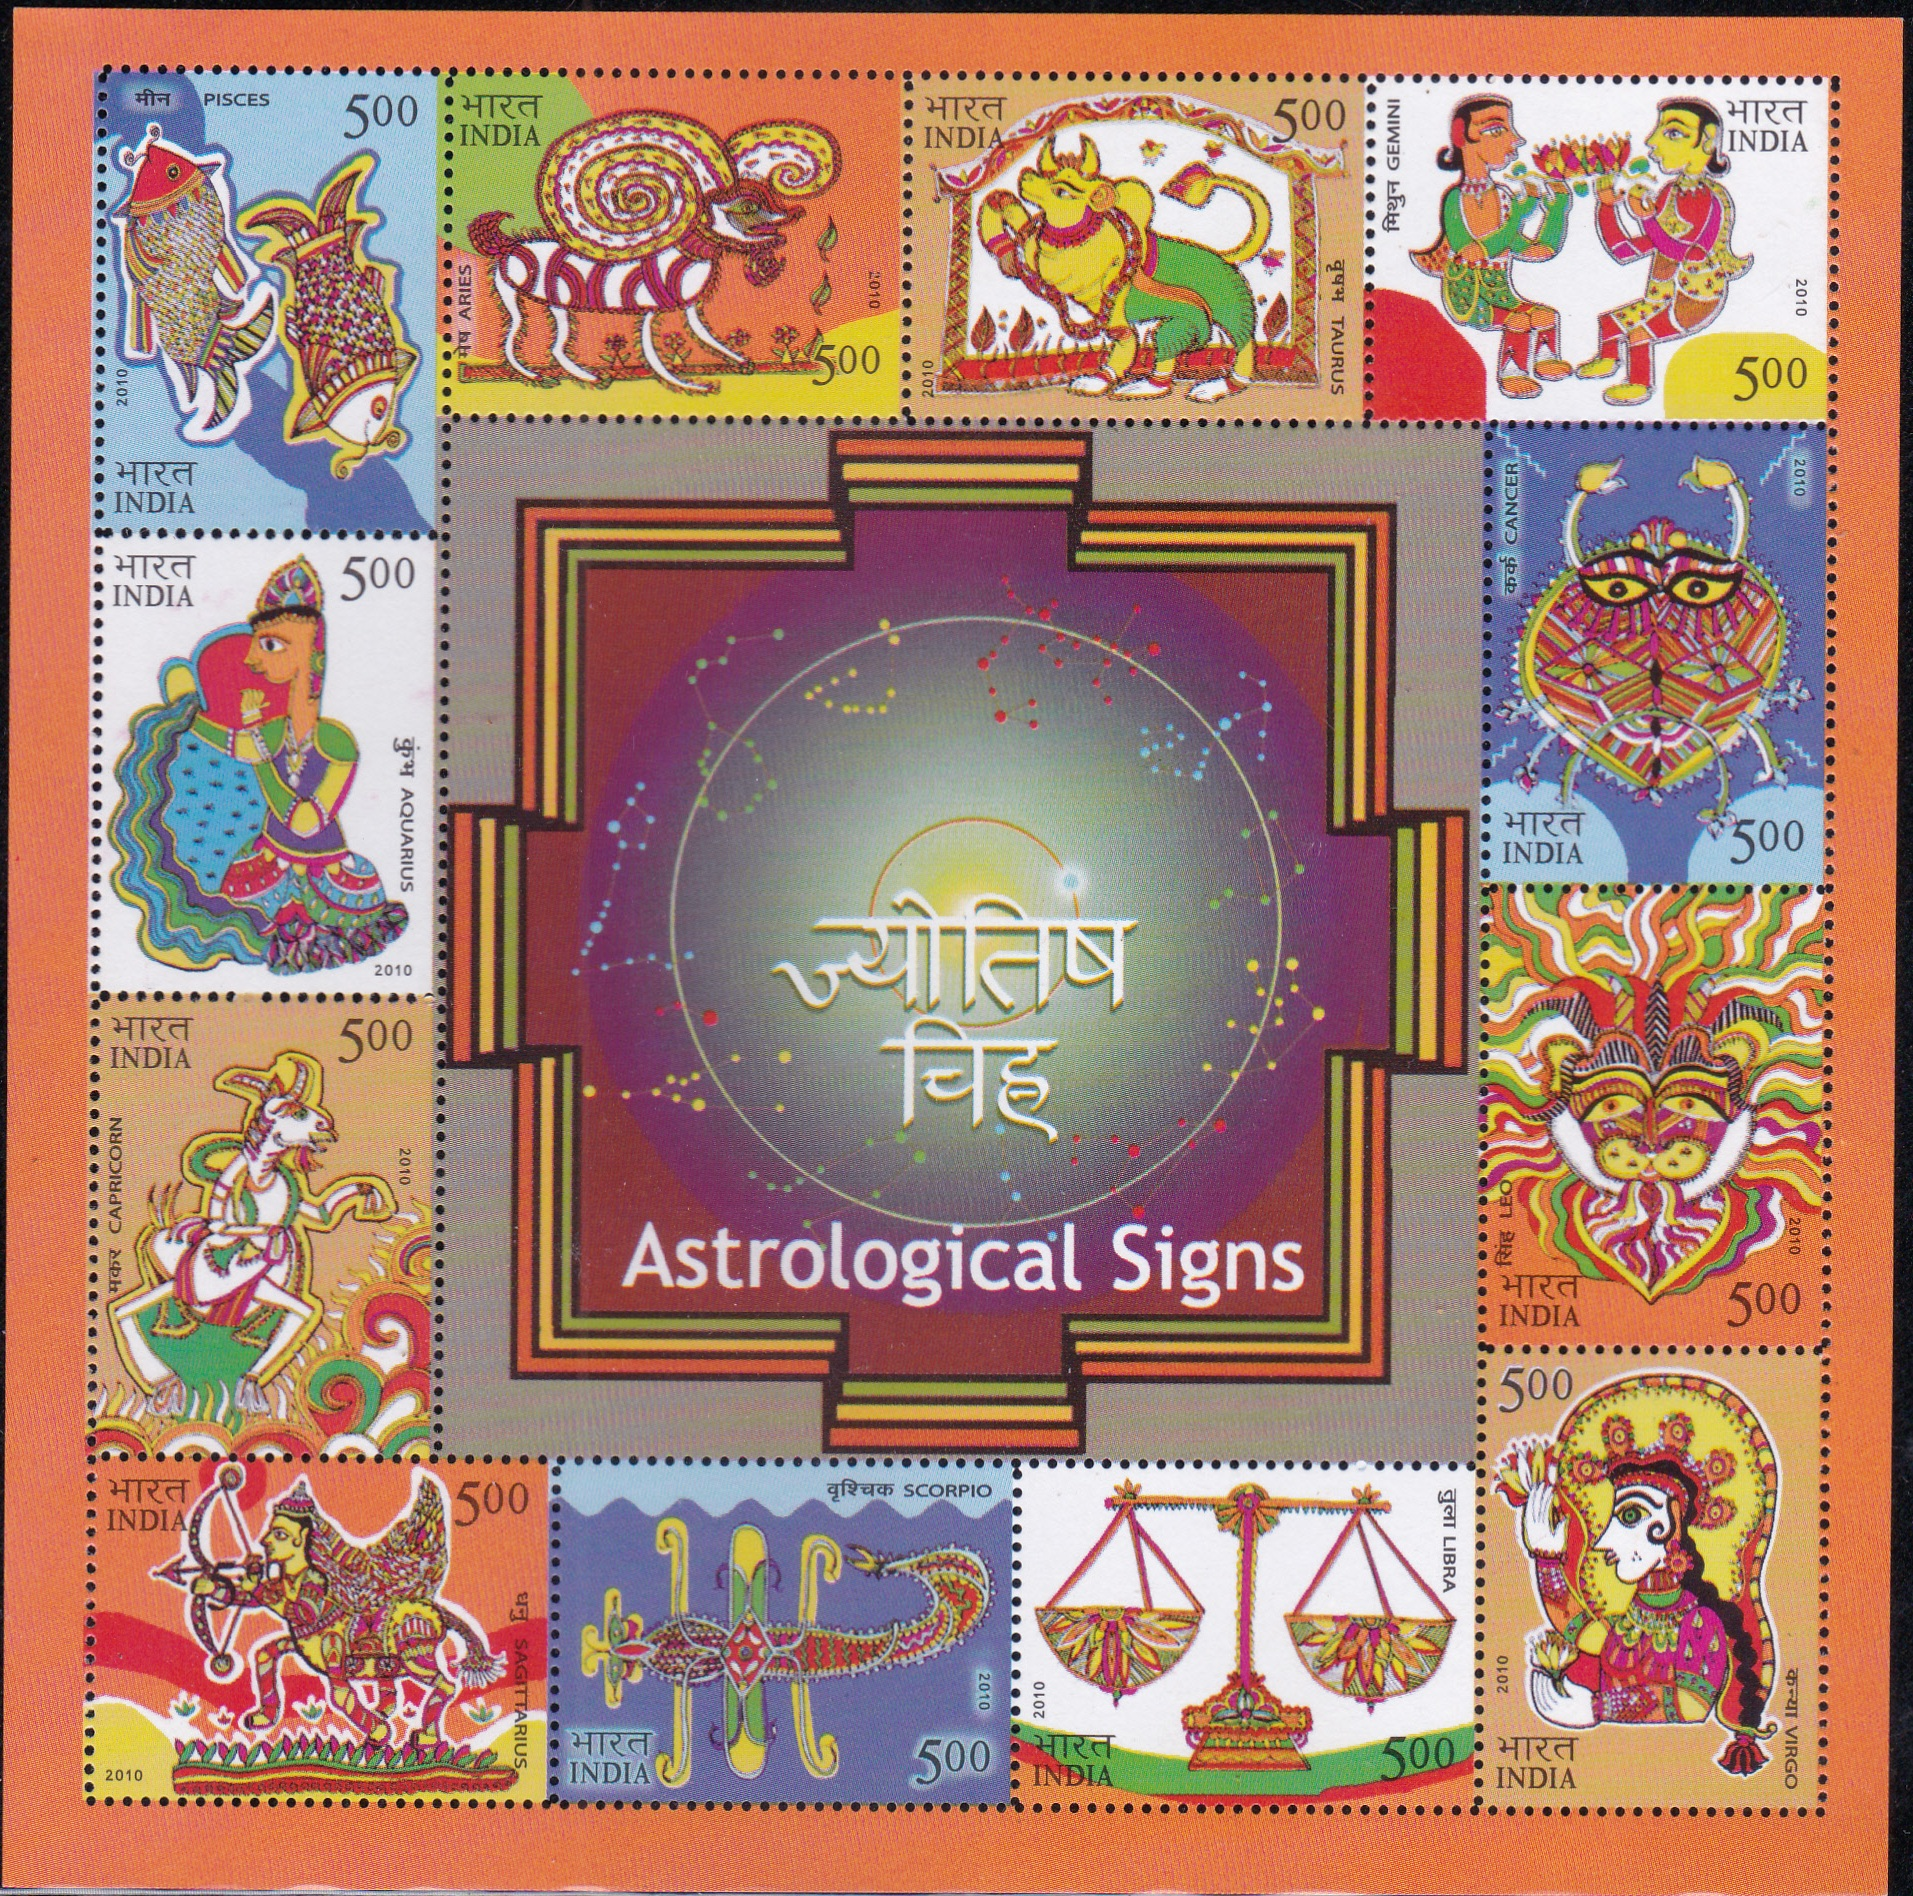 2588 Astrological Signs